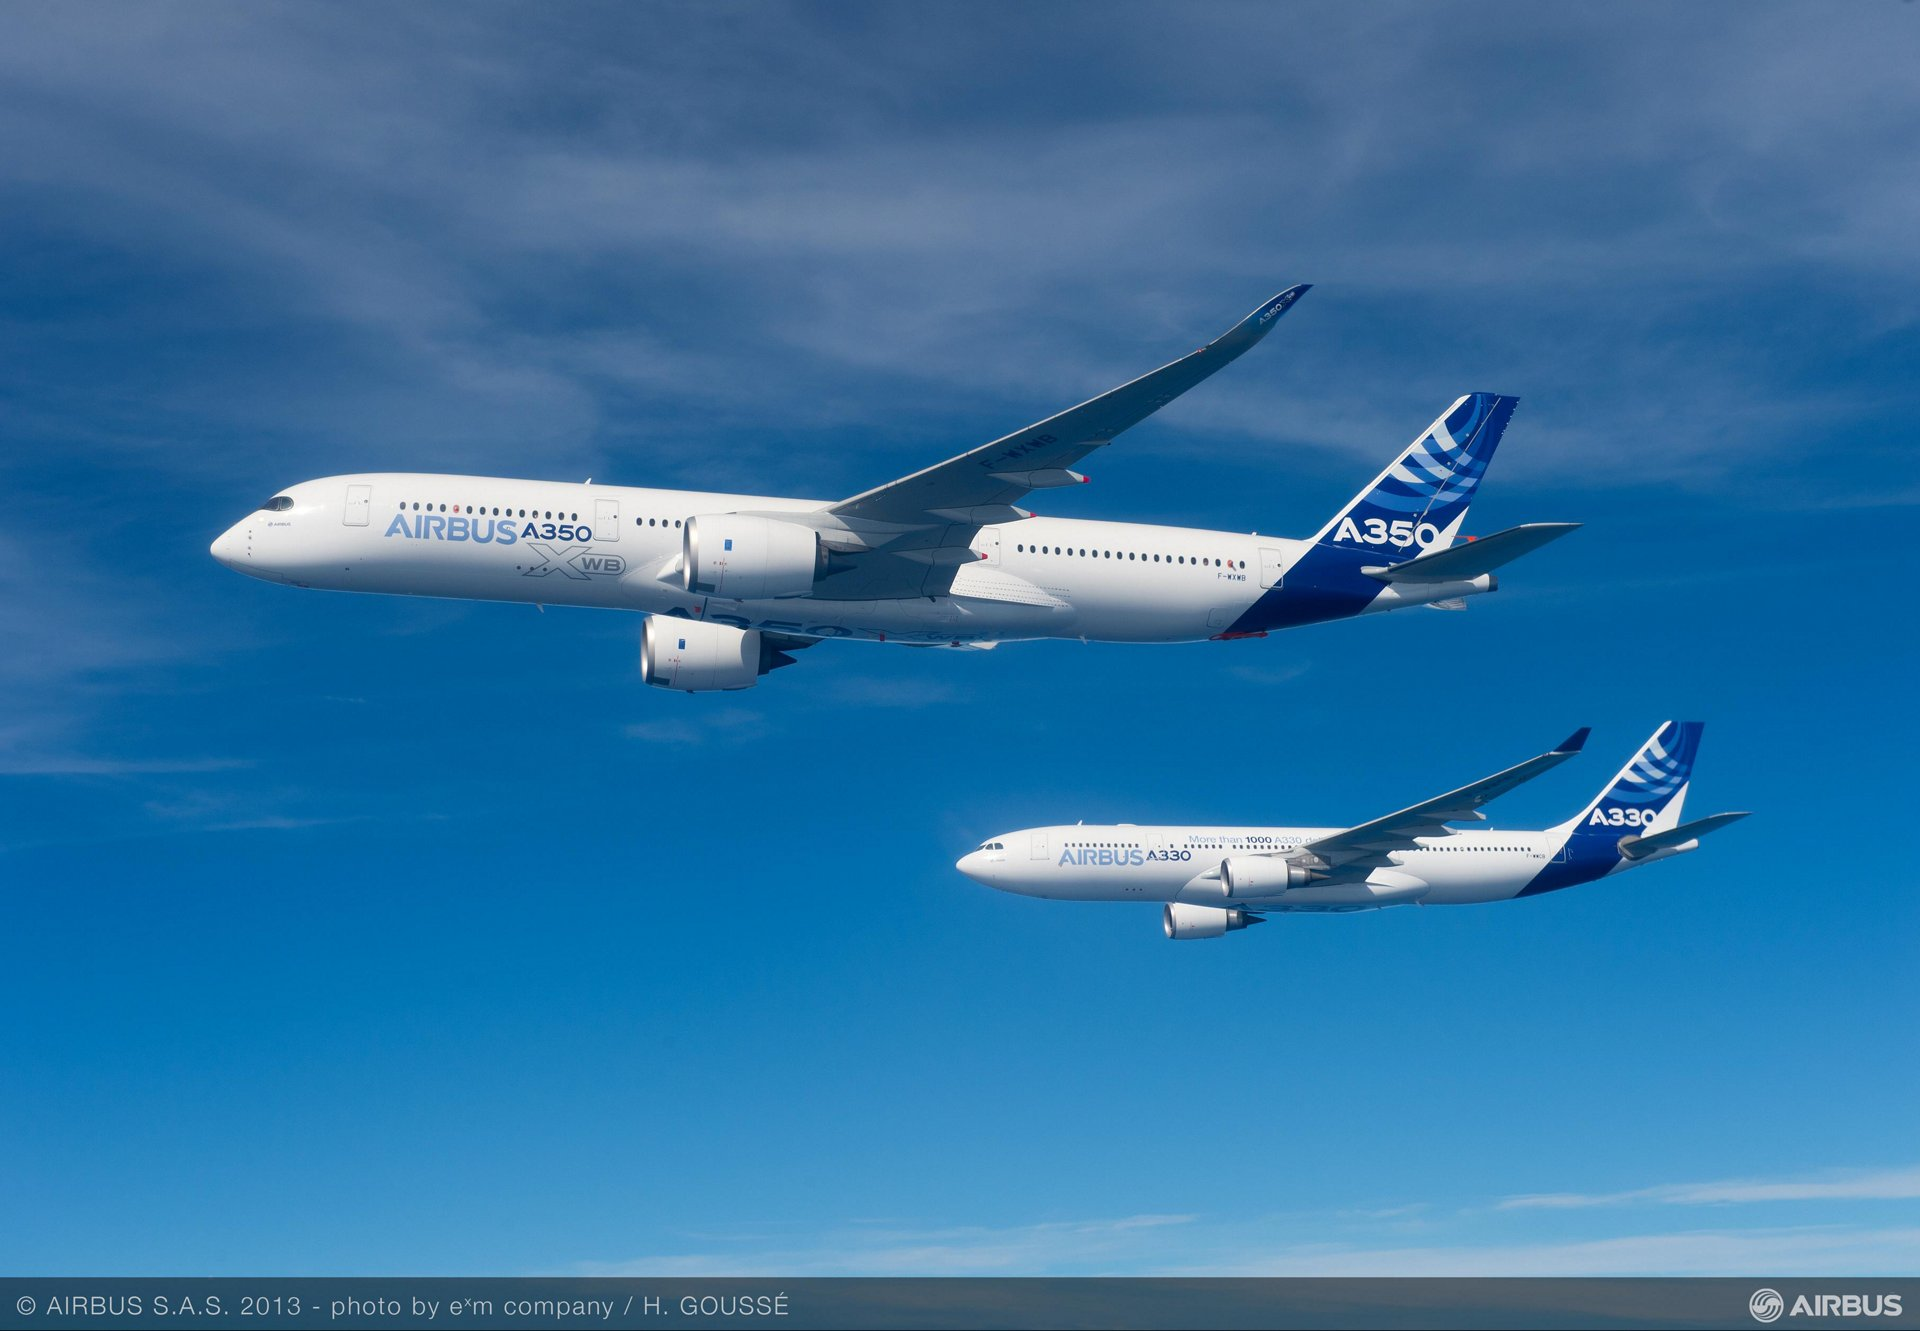 Formation flight A330 A350 XWB